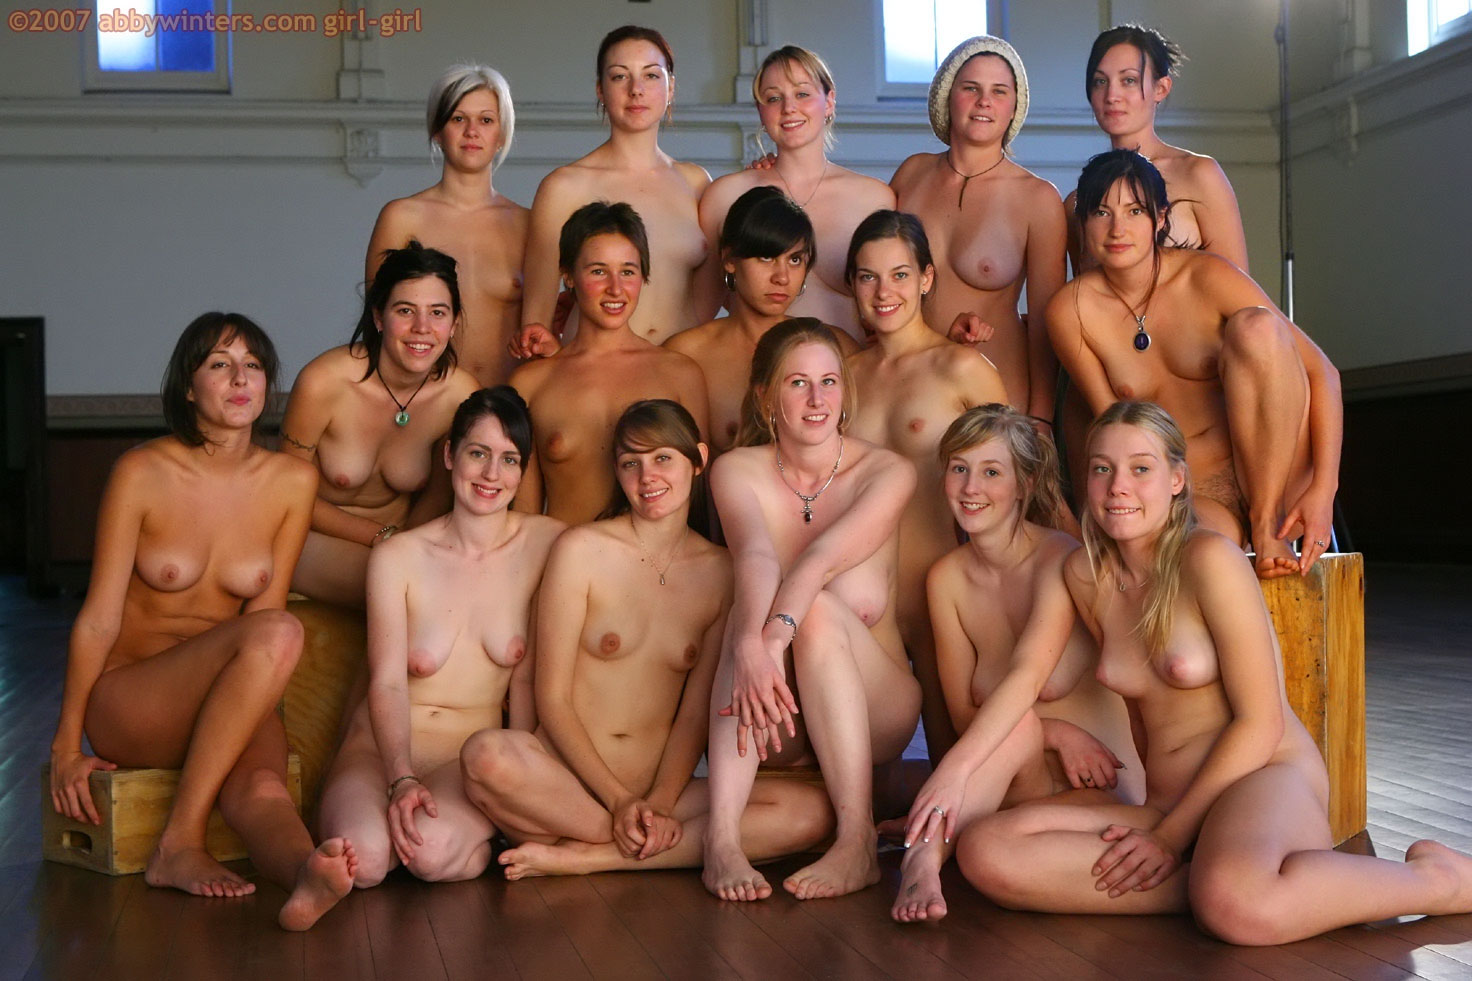 groups female nudes jpg 1200x900